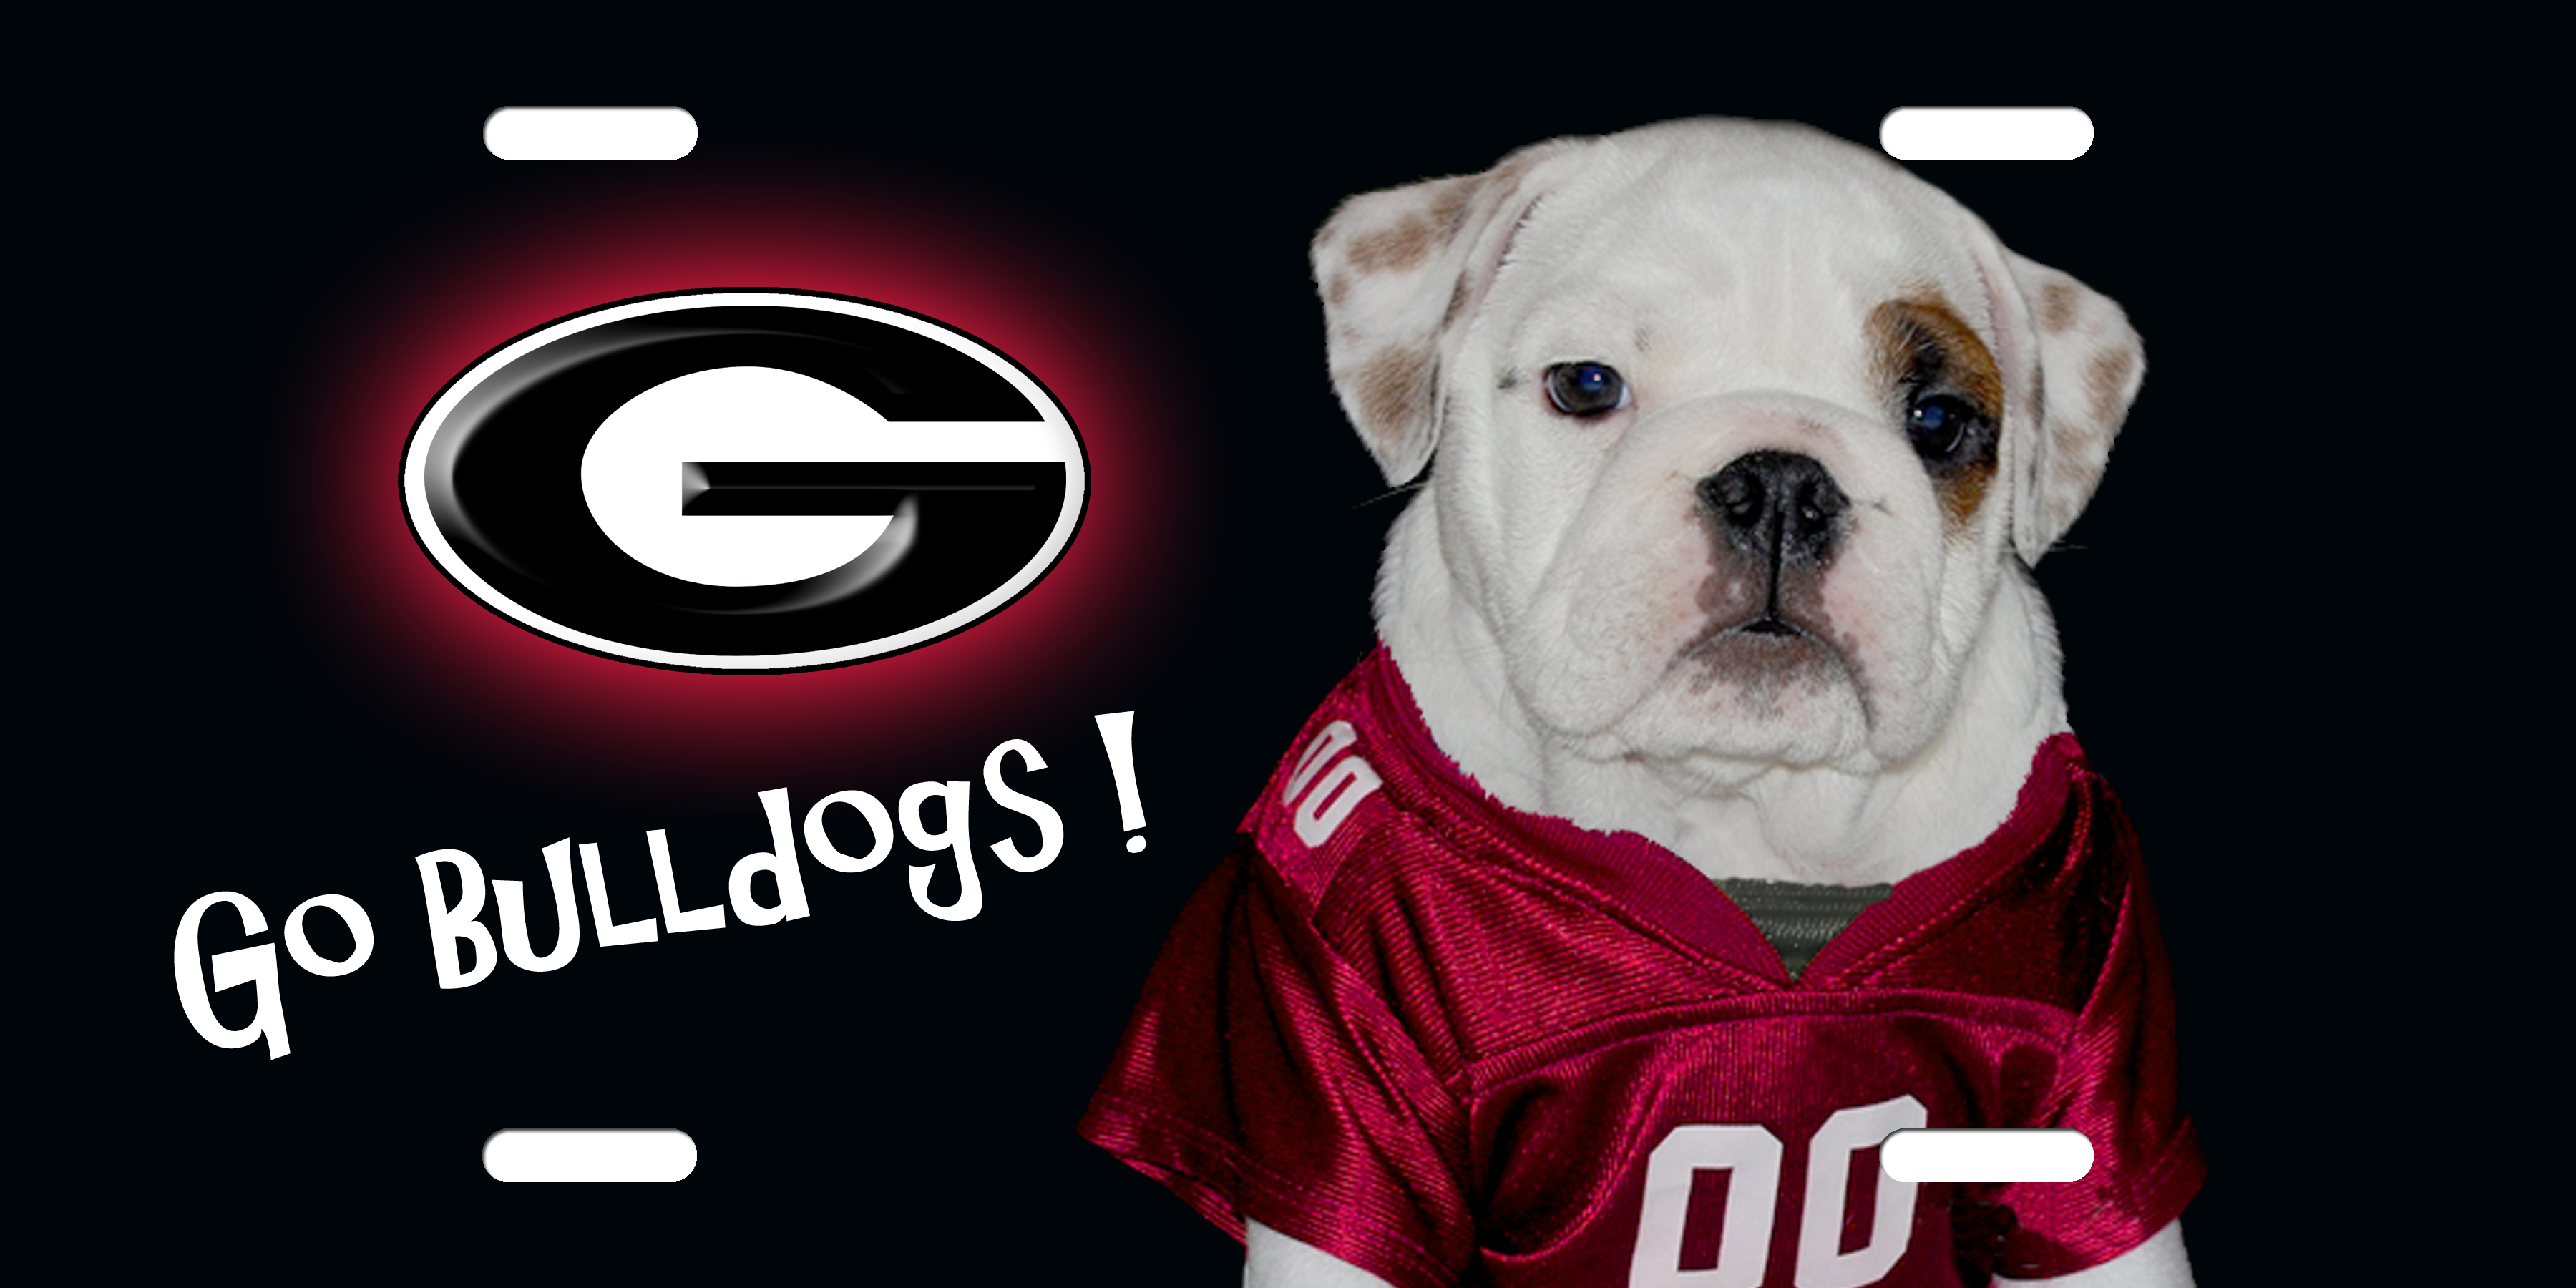 Georgia Bulldogs Camo Georgia bulldog license plate 3600x1800